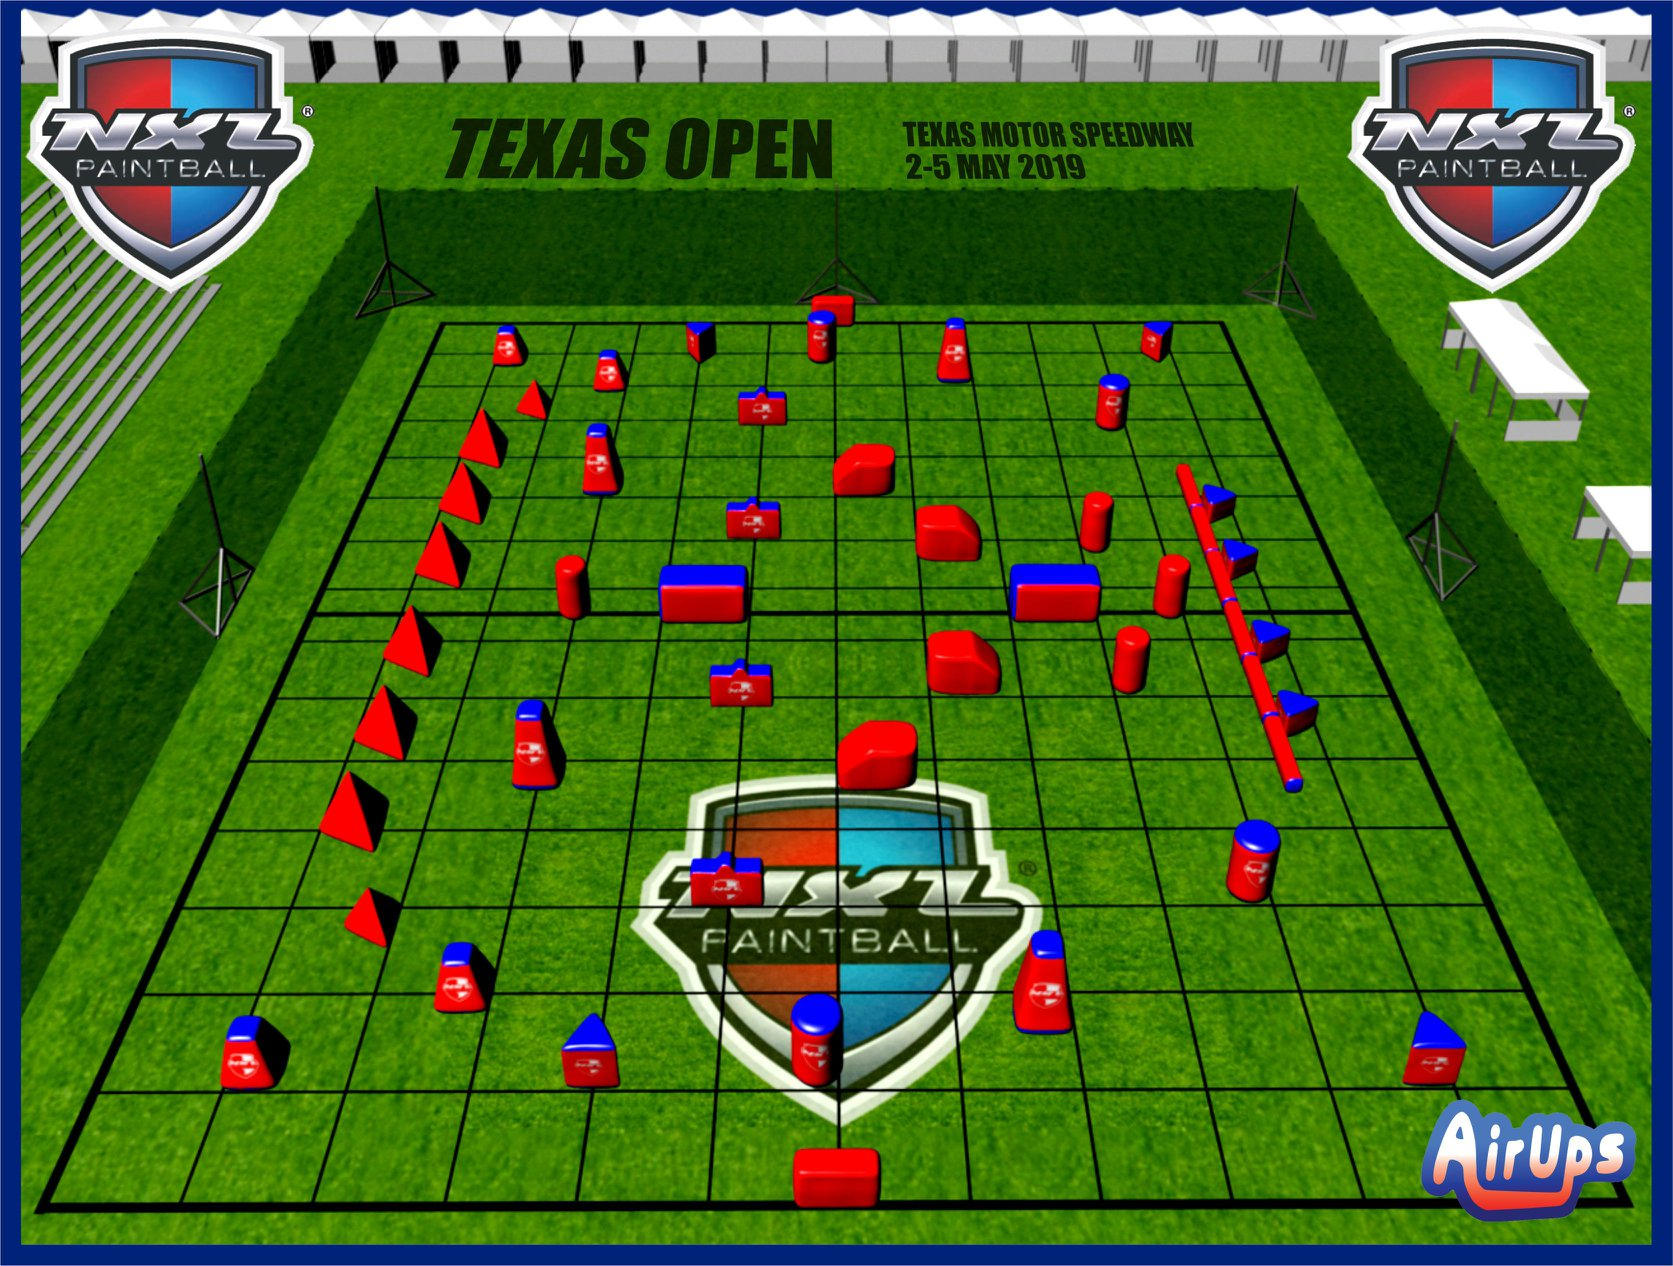 nxl2019texas_layout_1.jpg